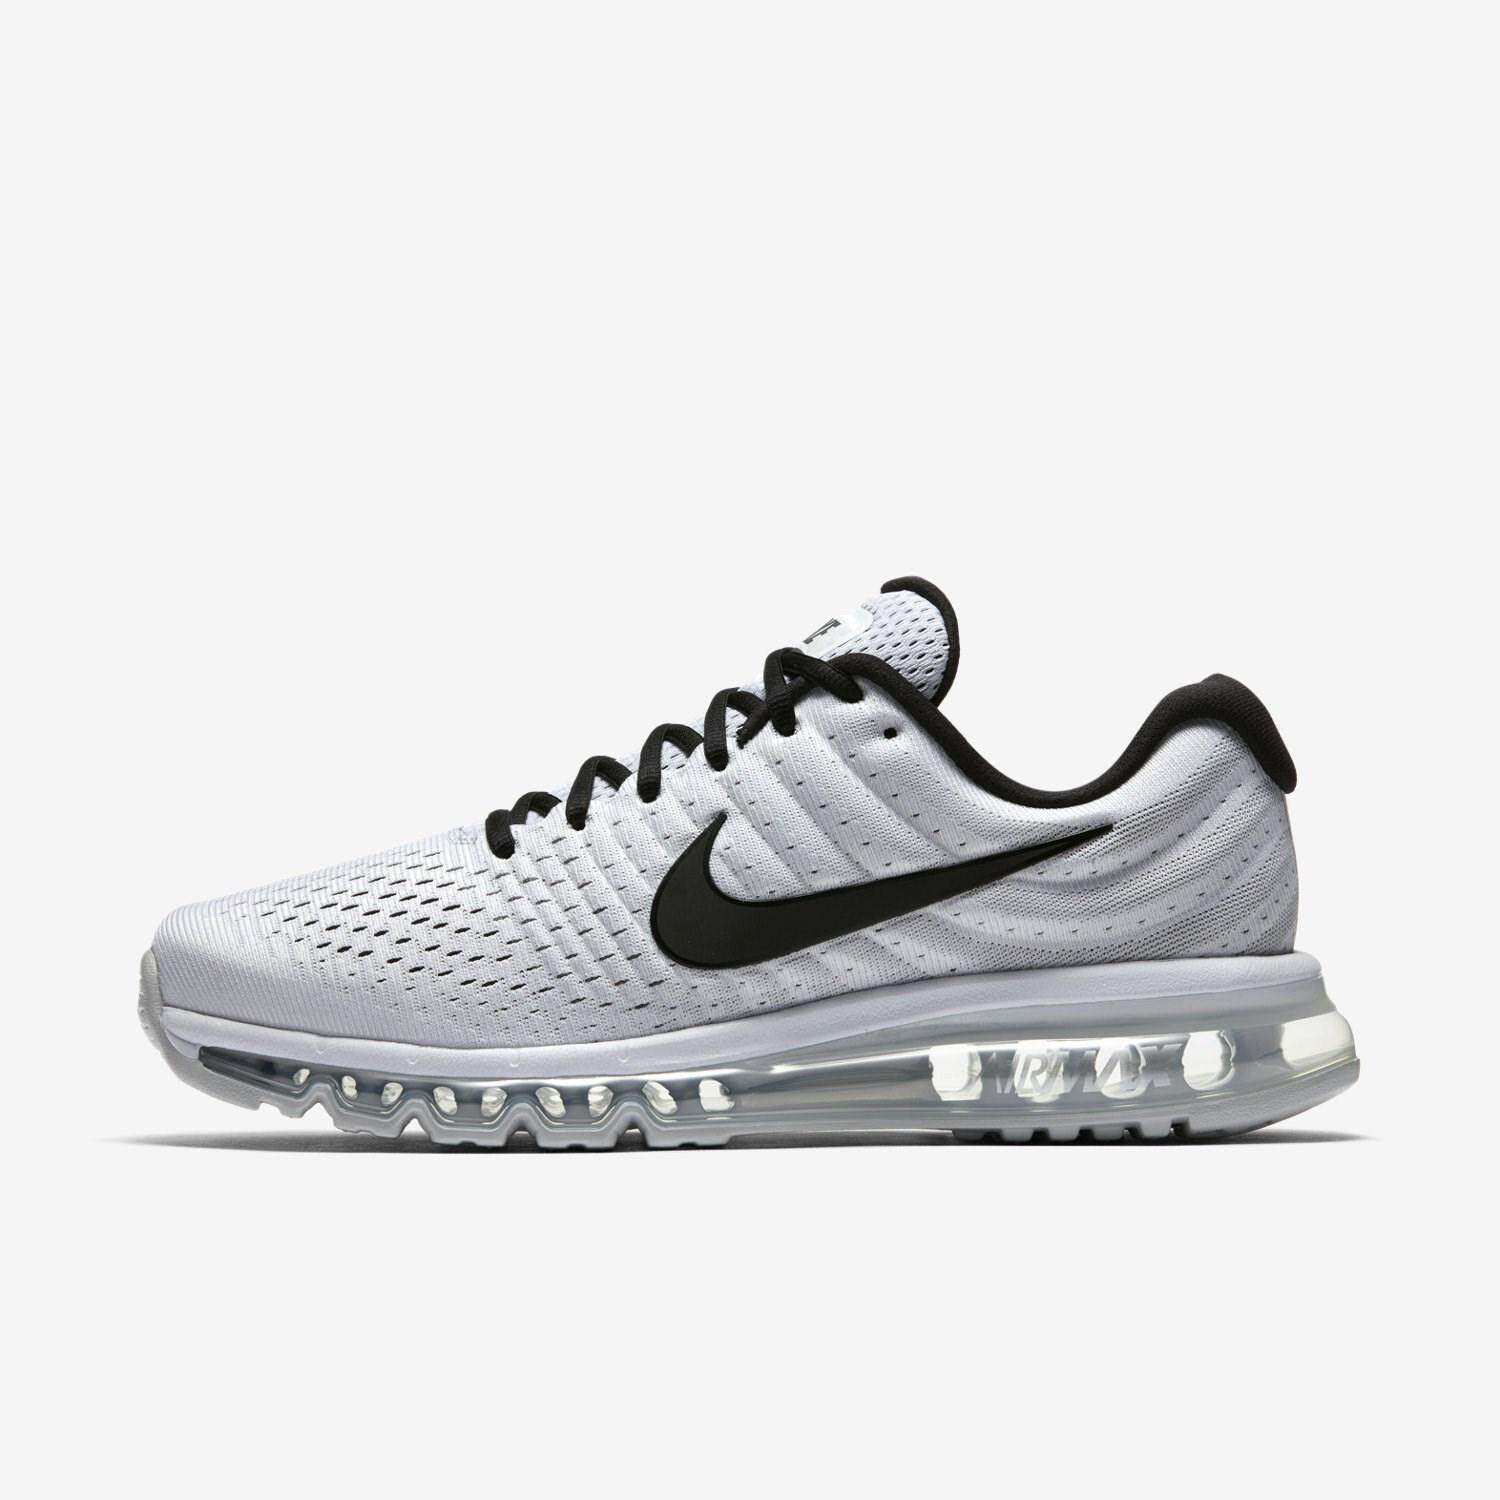 new product 61360 4f894 Nike Air cushion running shoes men s shoes AIRMAX2017 sports flagship  coupon 849559